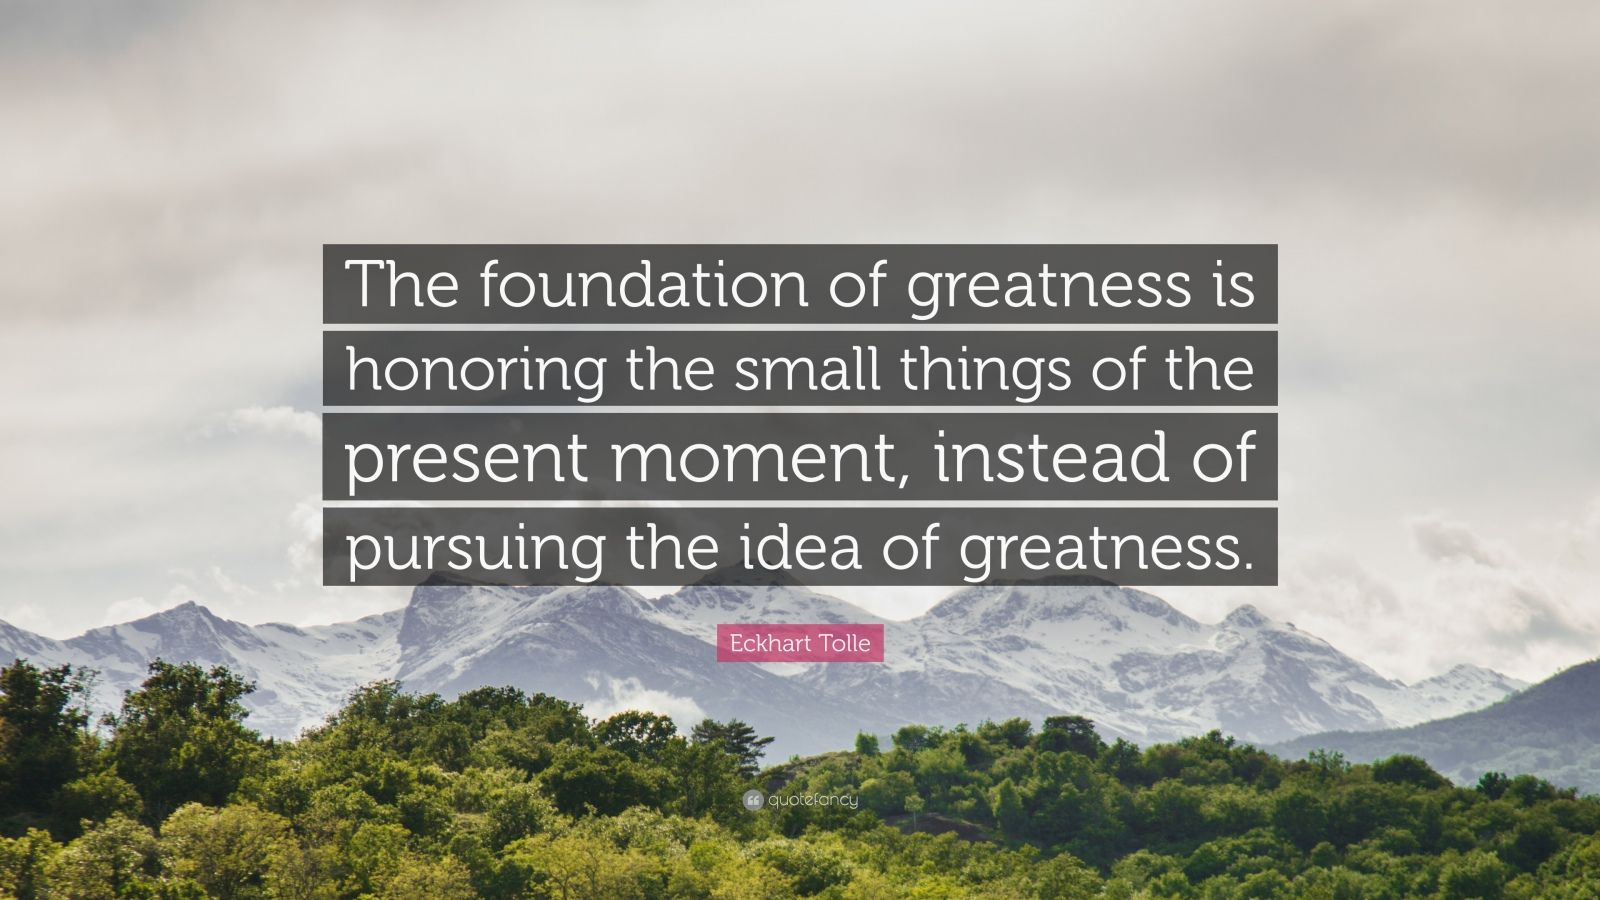 """Eckhart Tolle Quote: """"The foundation of greatness is honoring the small things of the present moment, instead of pursuing the idea of greatness."""""""